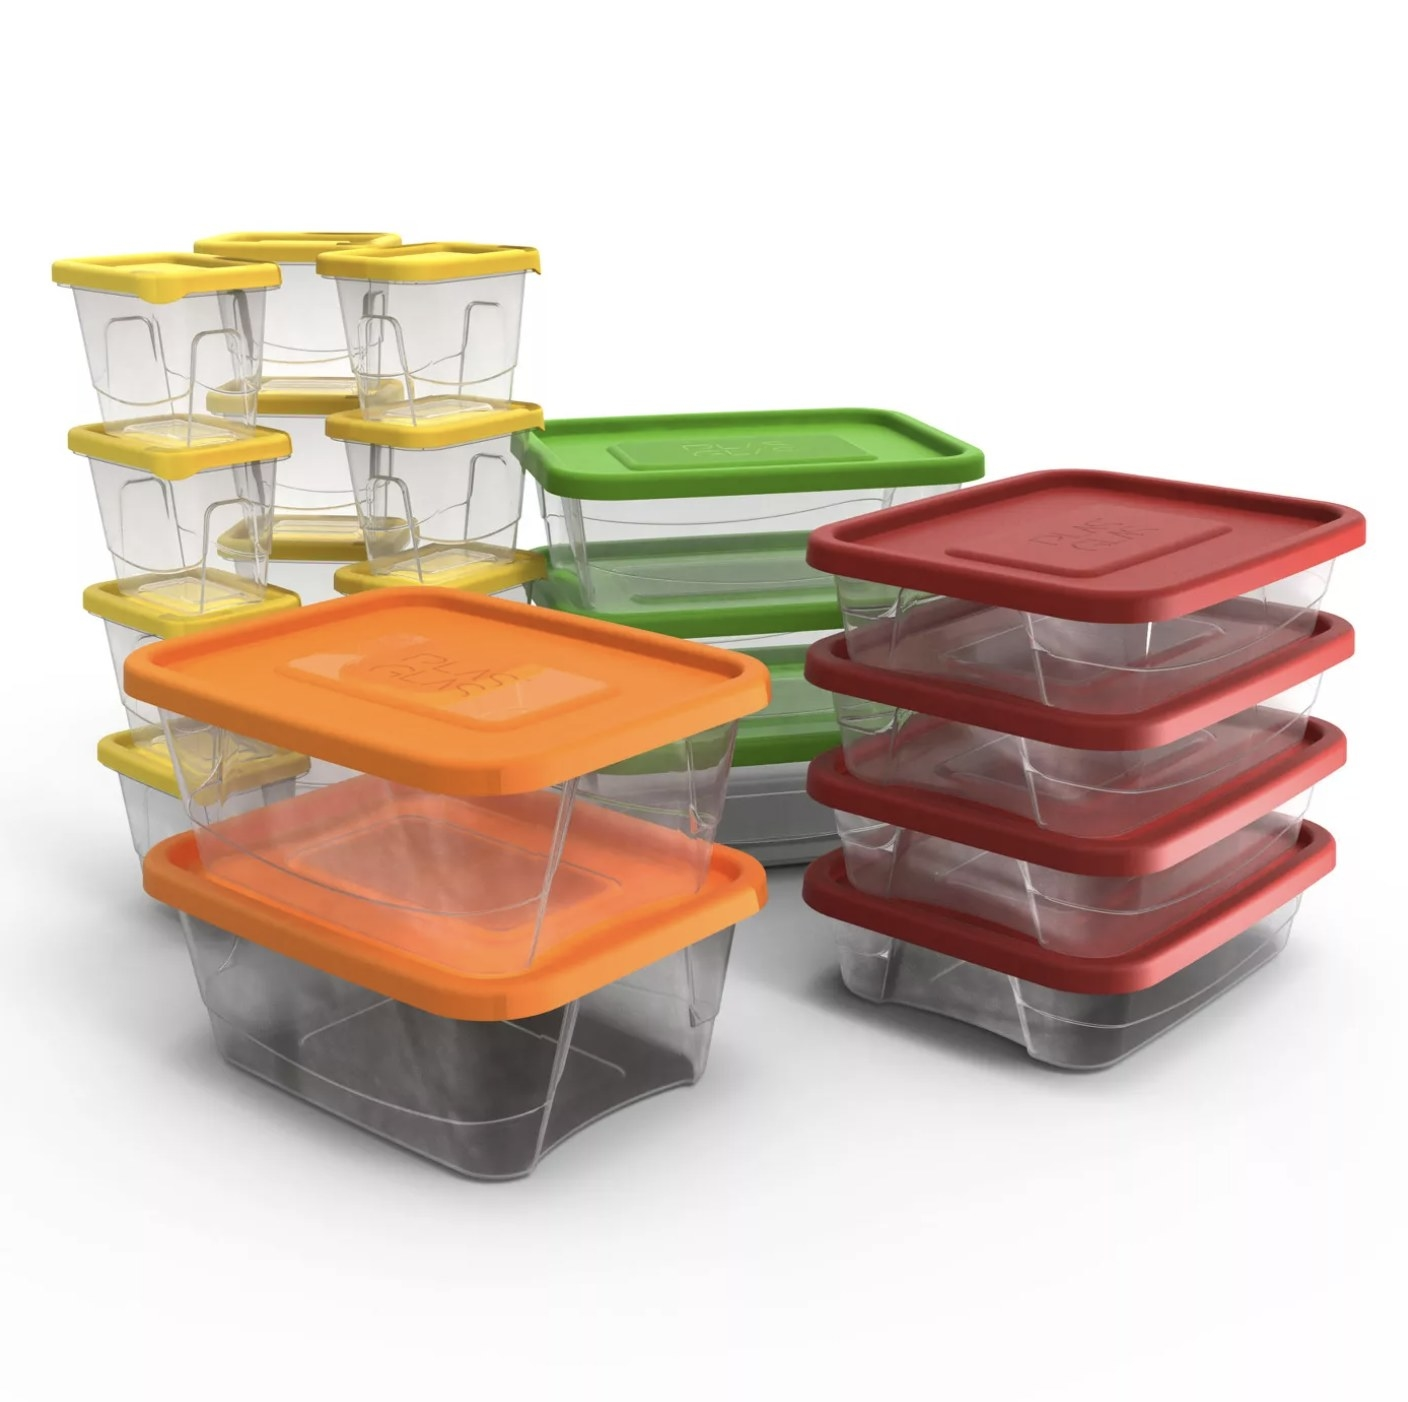 Lunch containers stacked in various sizes and colored lids